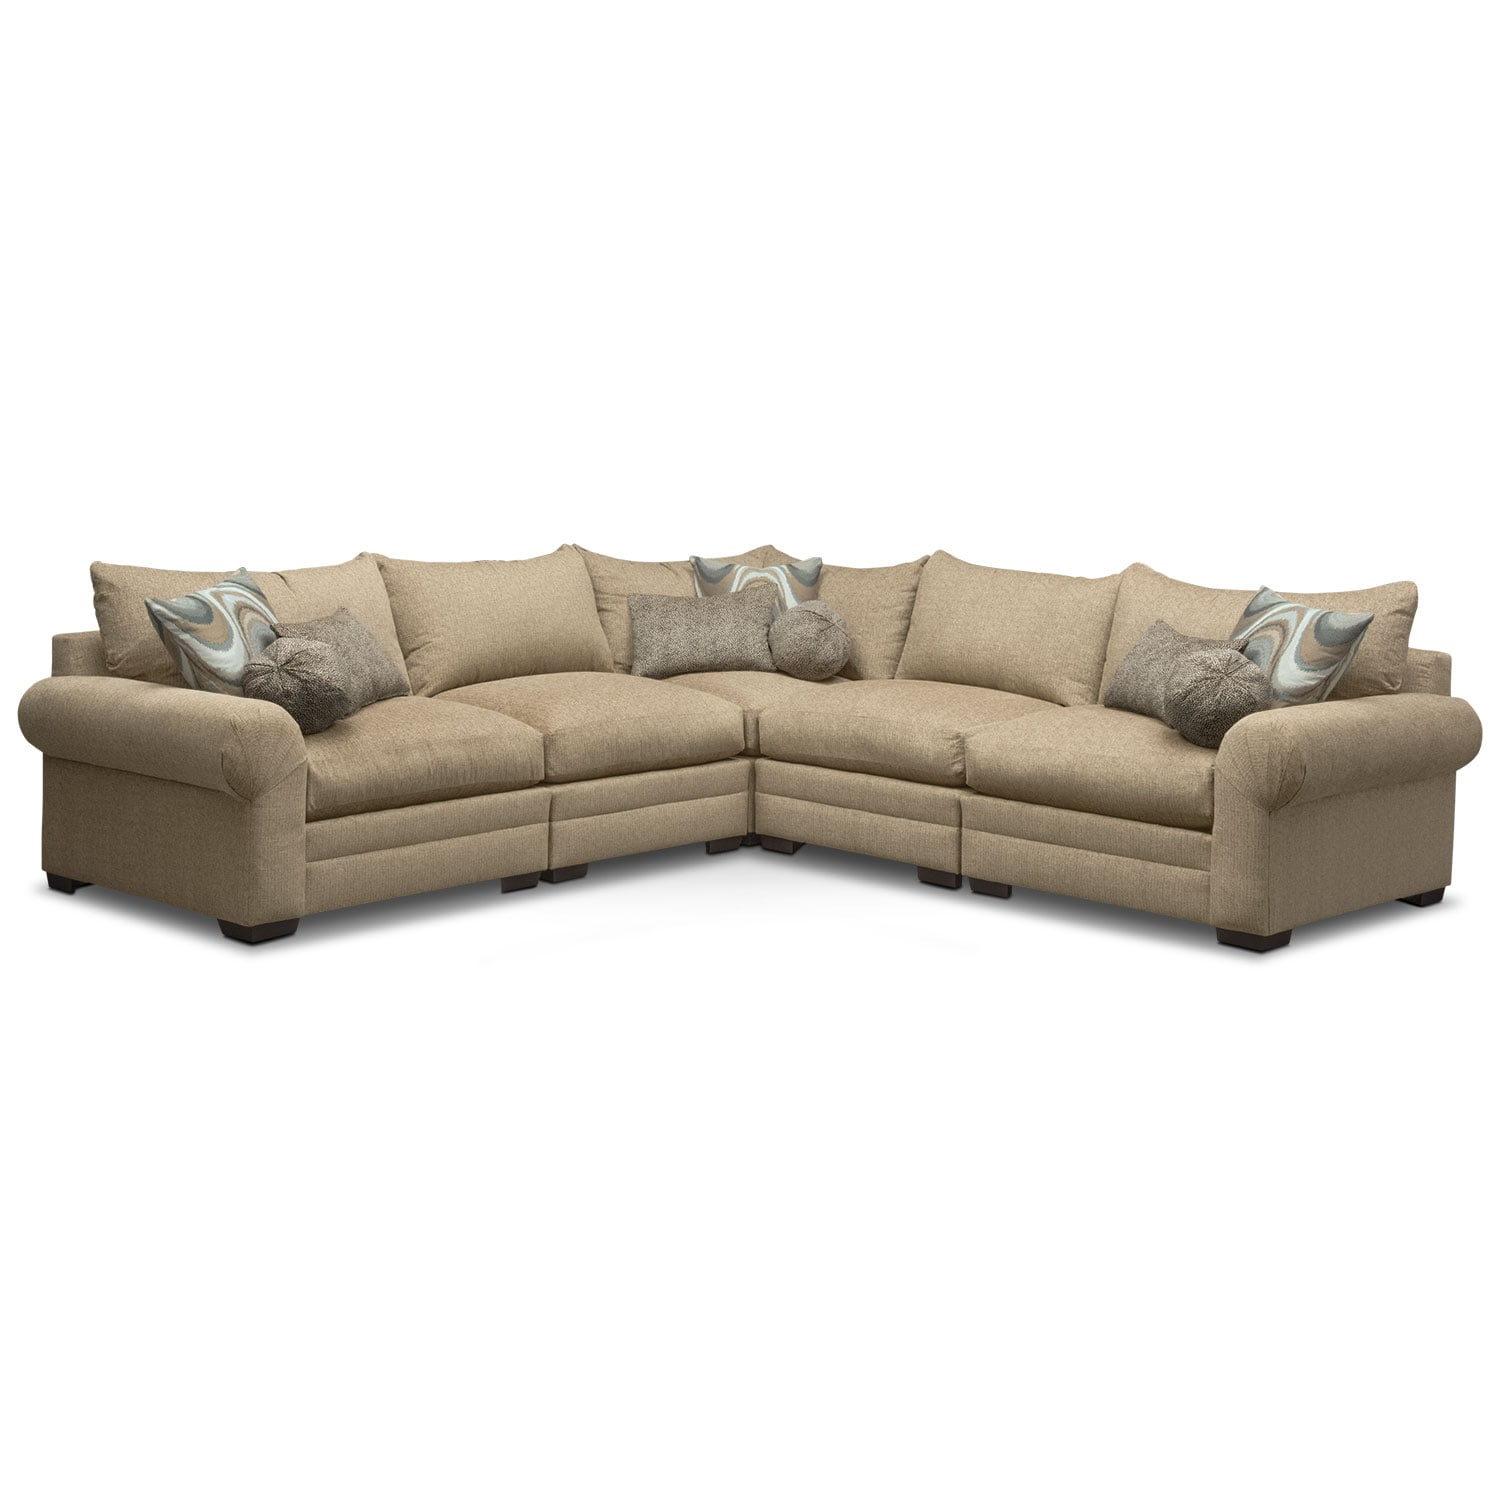 Wilshire 5-Piece Sectional - Taupe